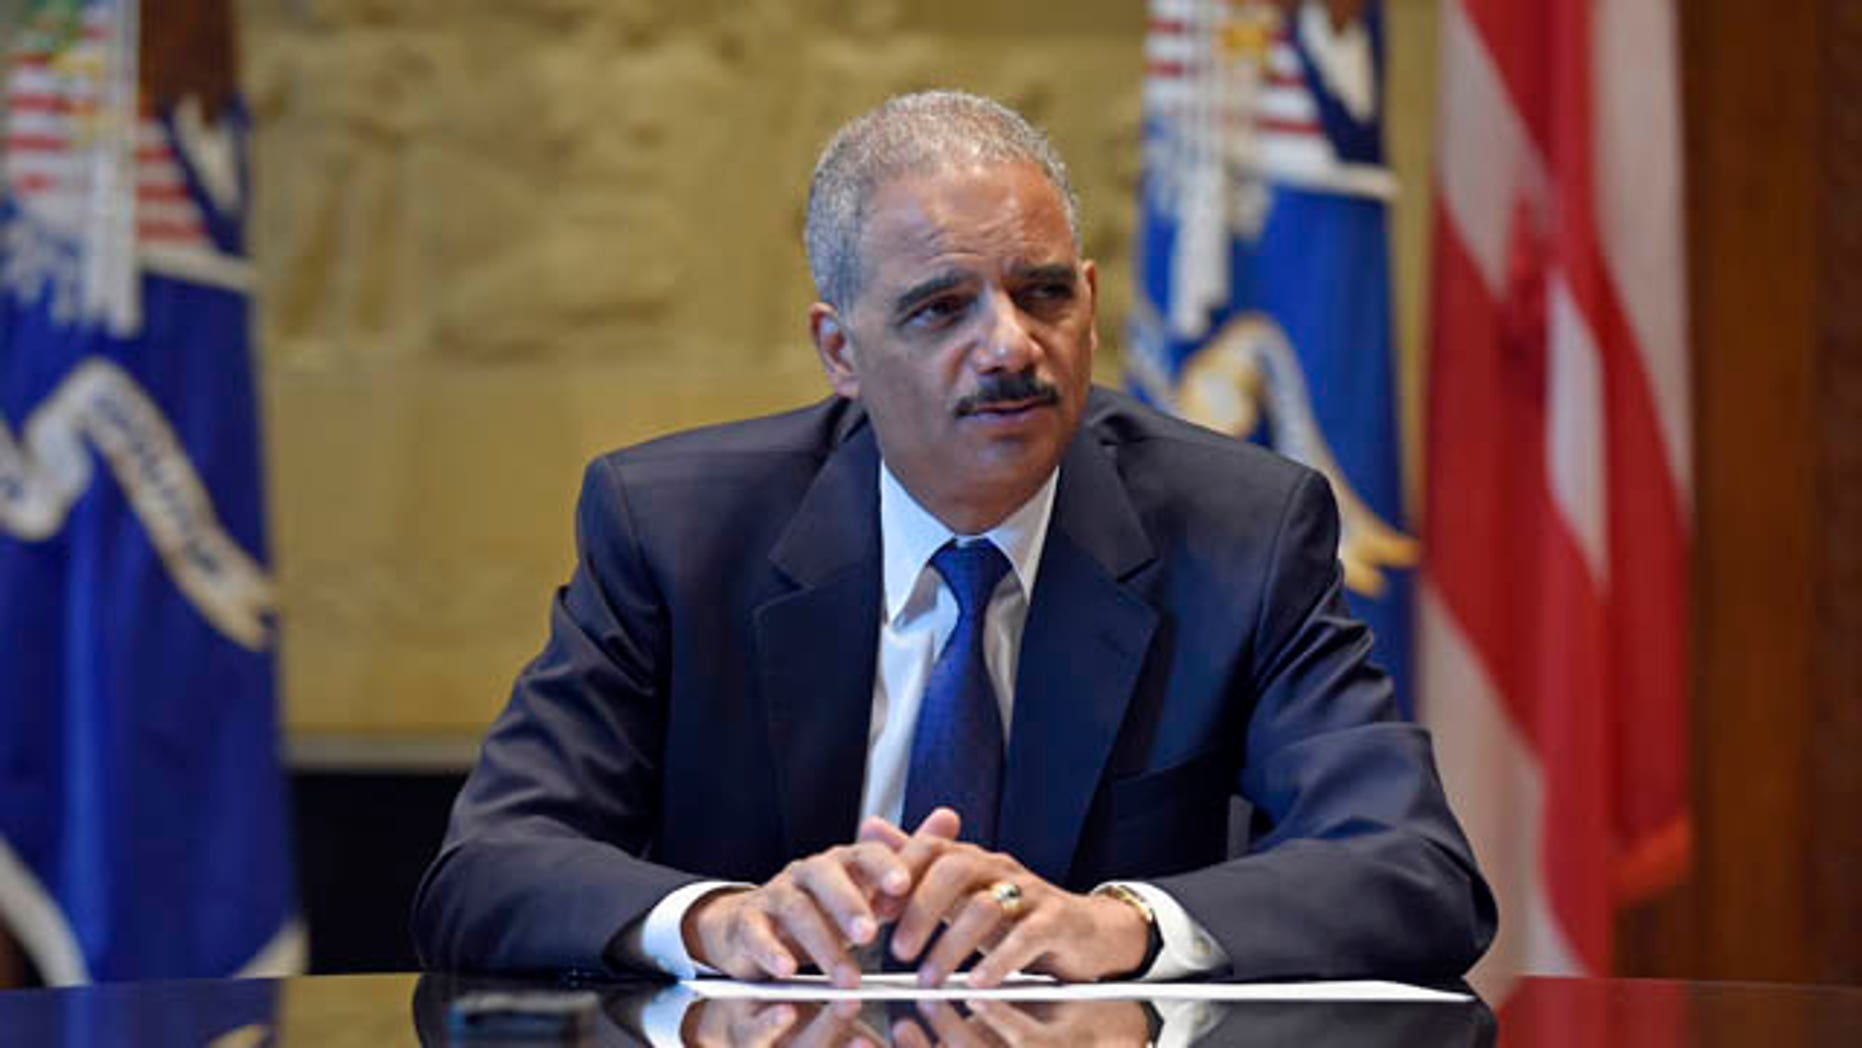 September 16, 2014: Attorney General Eric Holder speaks during an interview with The Associated Press at the Justice Department in Washington. Broadening its push to improve police relations with minorities, the Justice Department has enlisted a team of criminal justice researchers to study racial bias in law enforcement in five American cities and recommend strategies to address the problem nationally, Holder said Tuesday. (AP Photo/Susan Walsh)